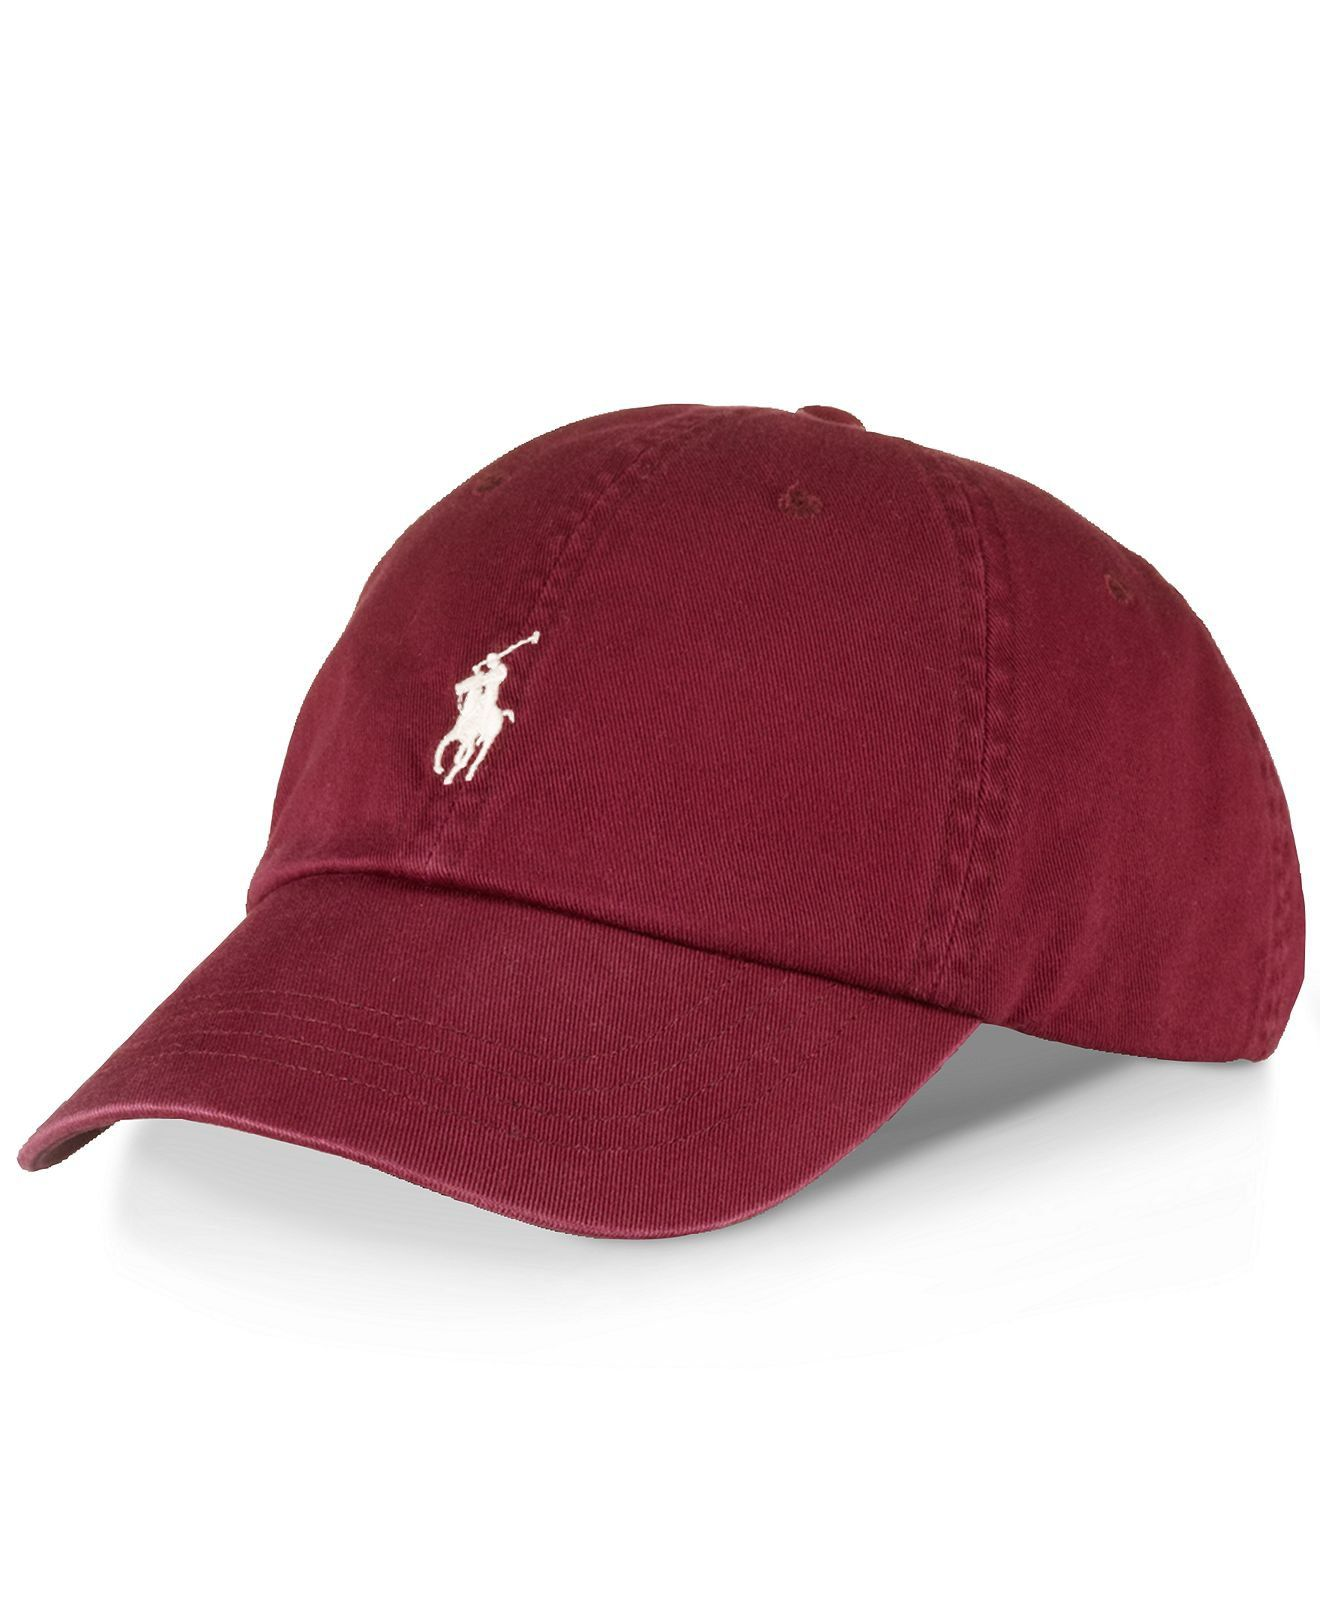 f9de38b0a32e80 Polo Ralph Lauren Hat, Classic Chino Sports Cap on Wanelo | Fashhh ...